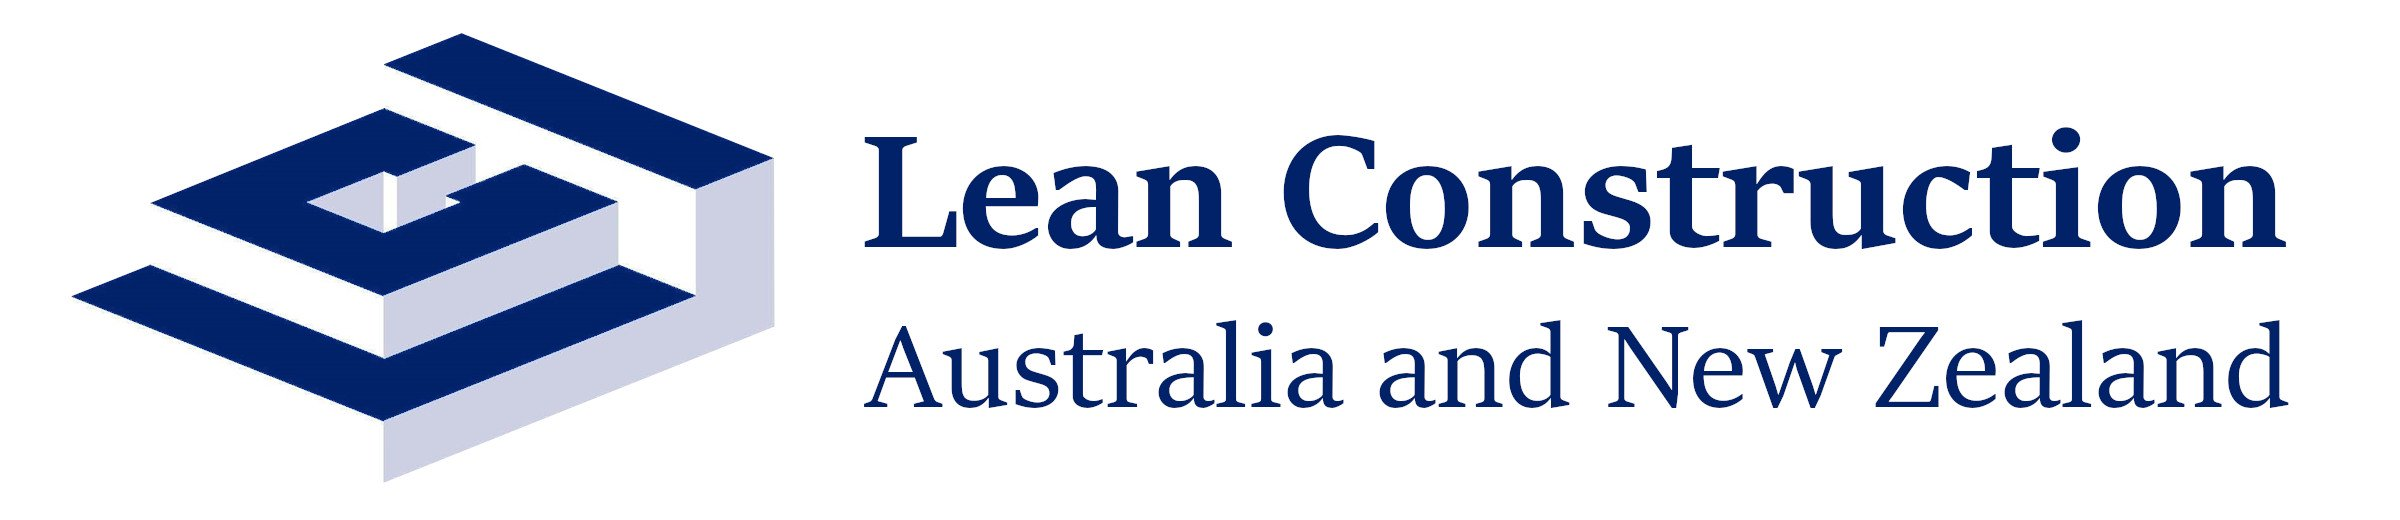 Leanconstruction ANZ